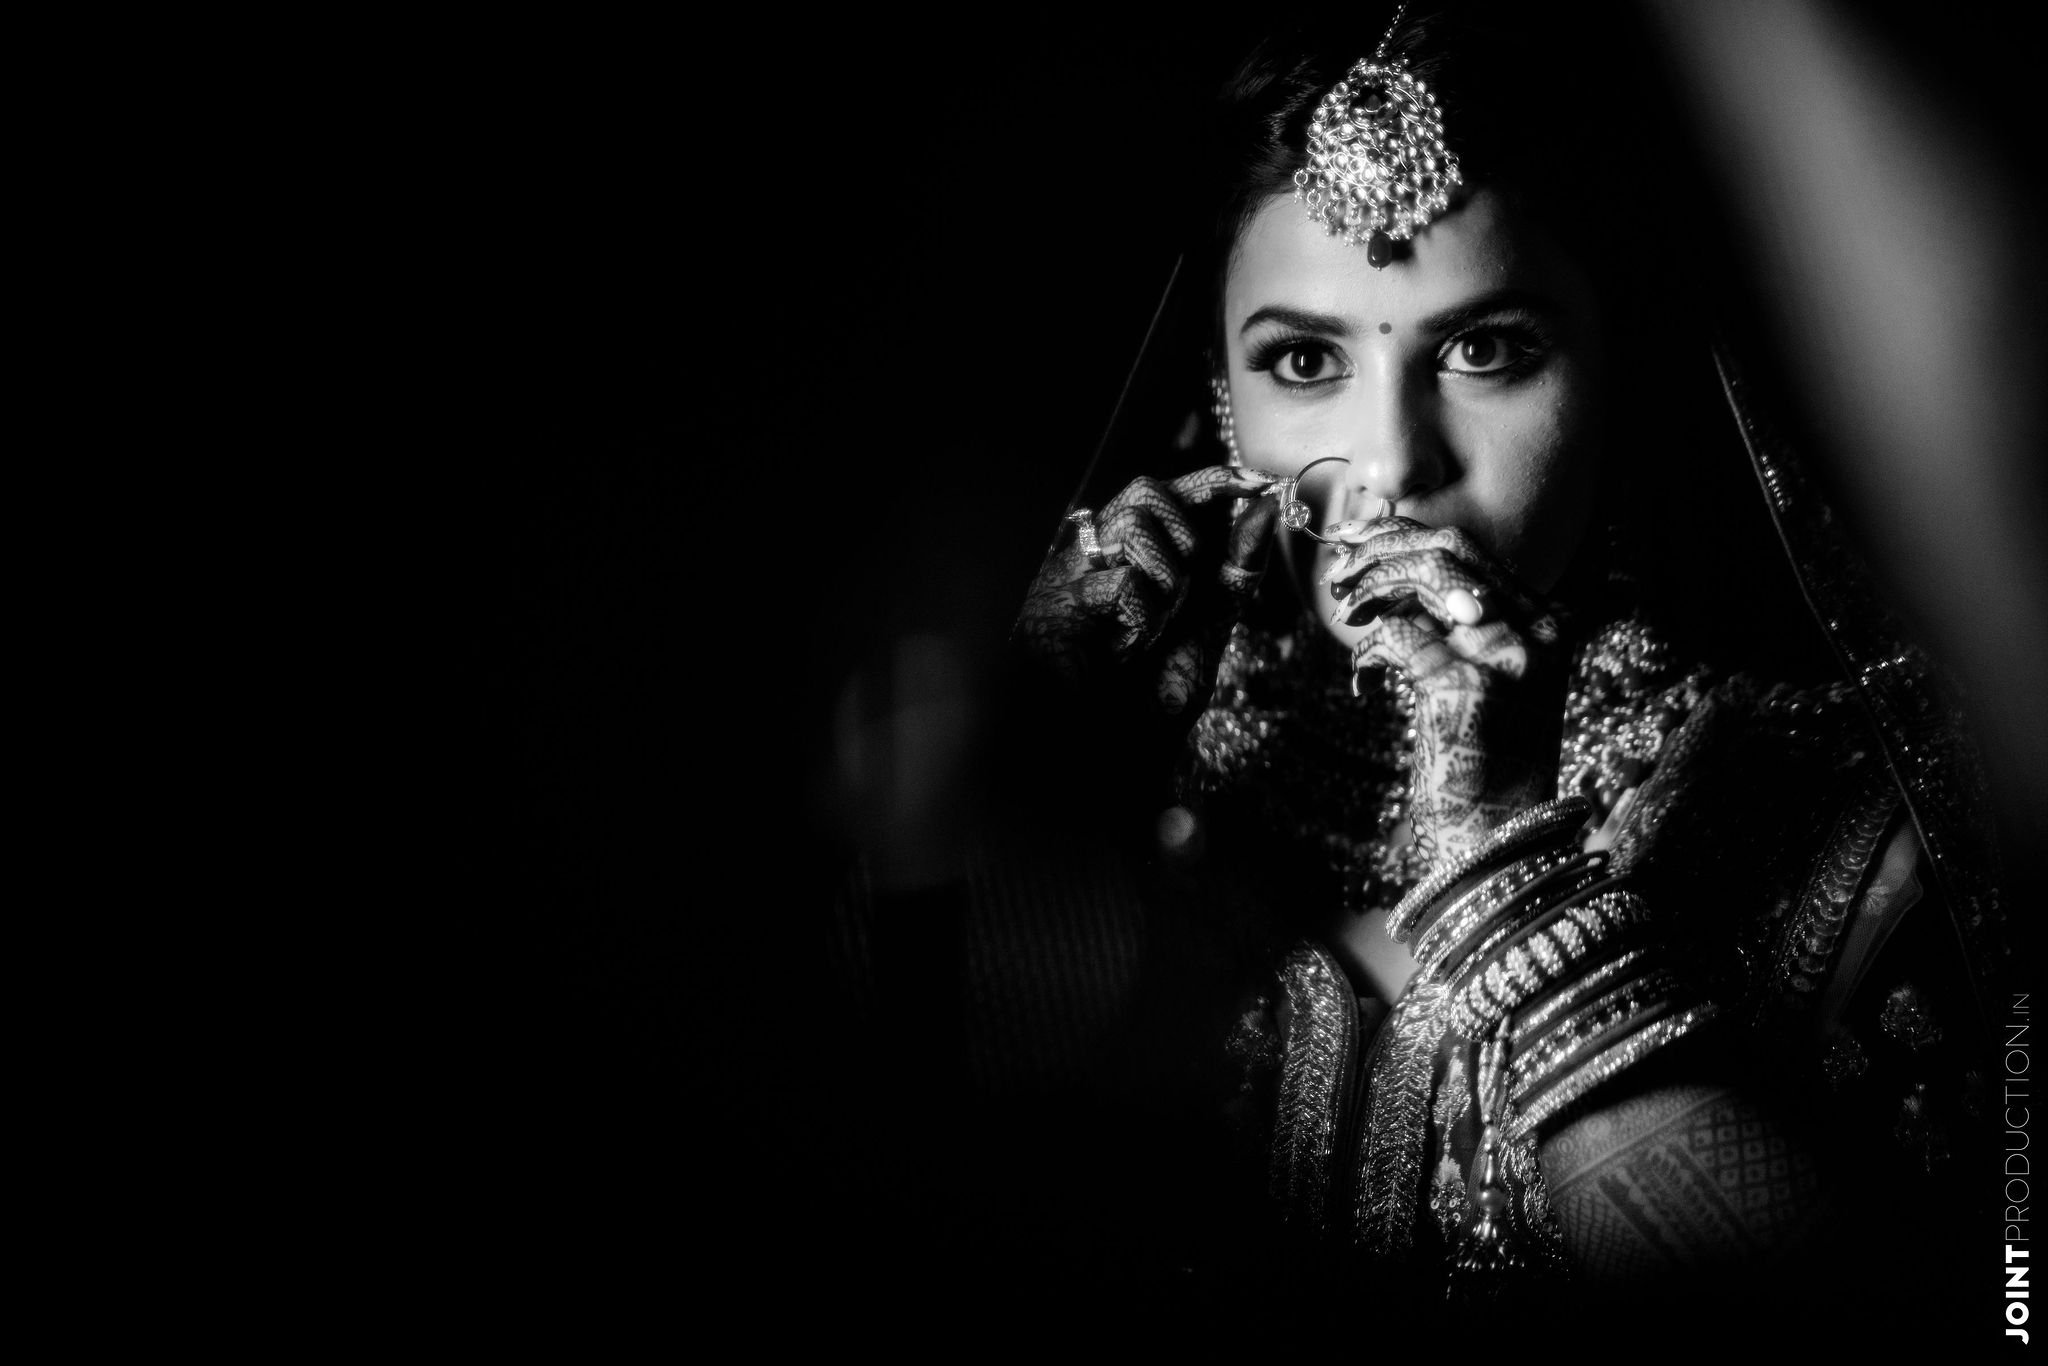 bnw shot of the bride with her bridal nath